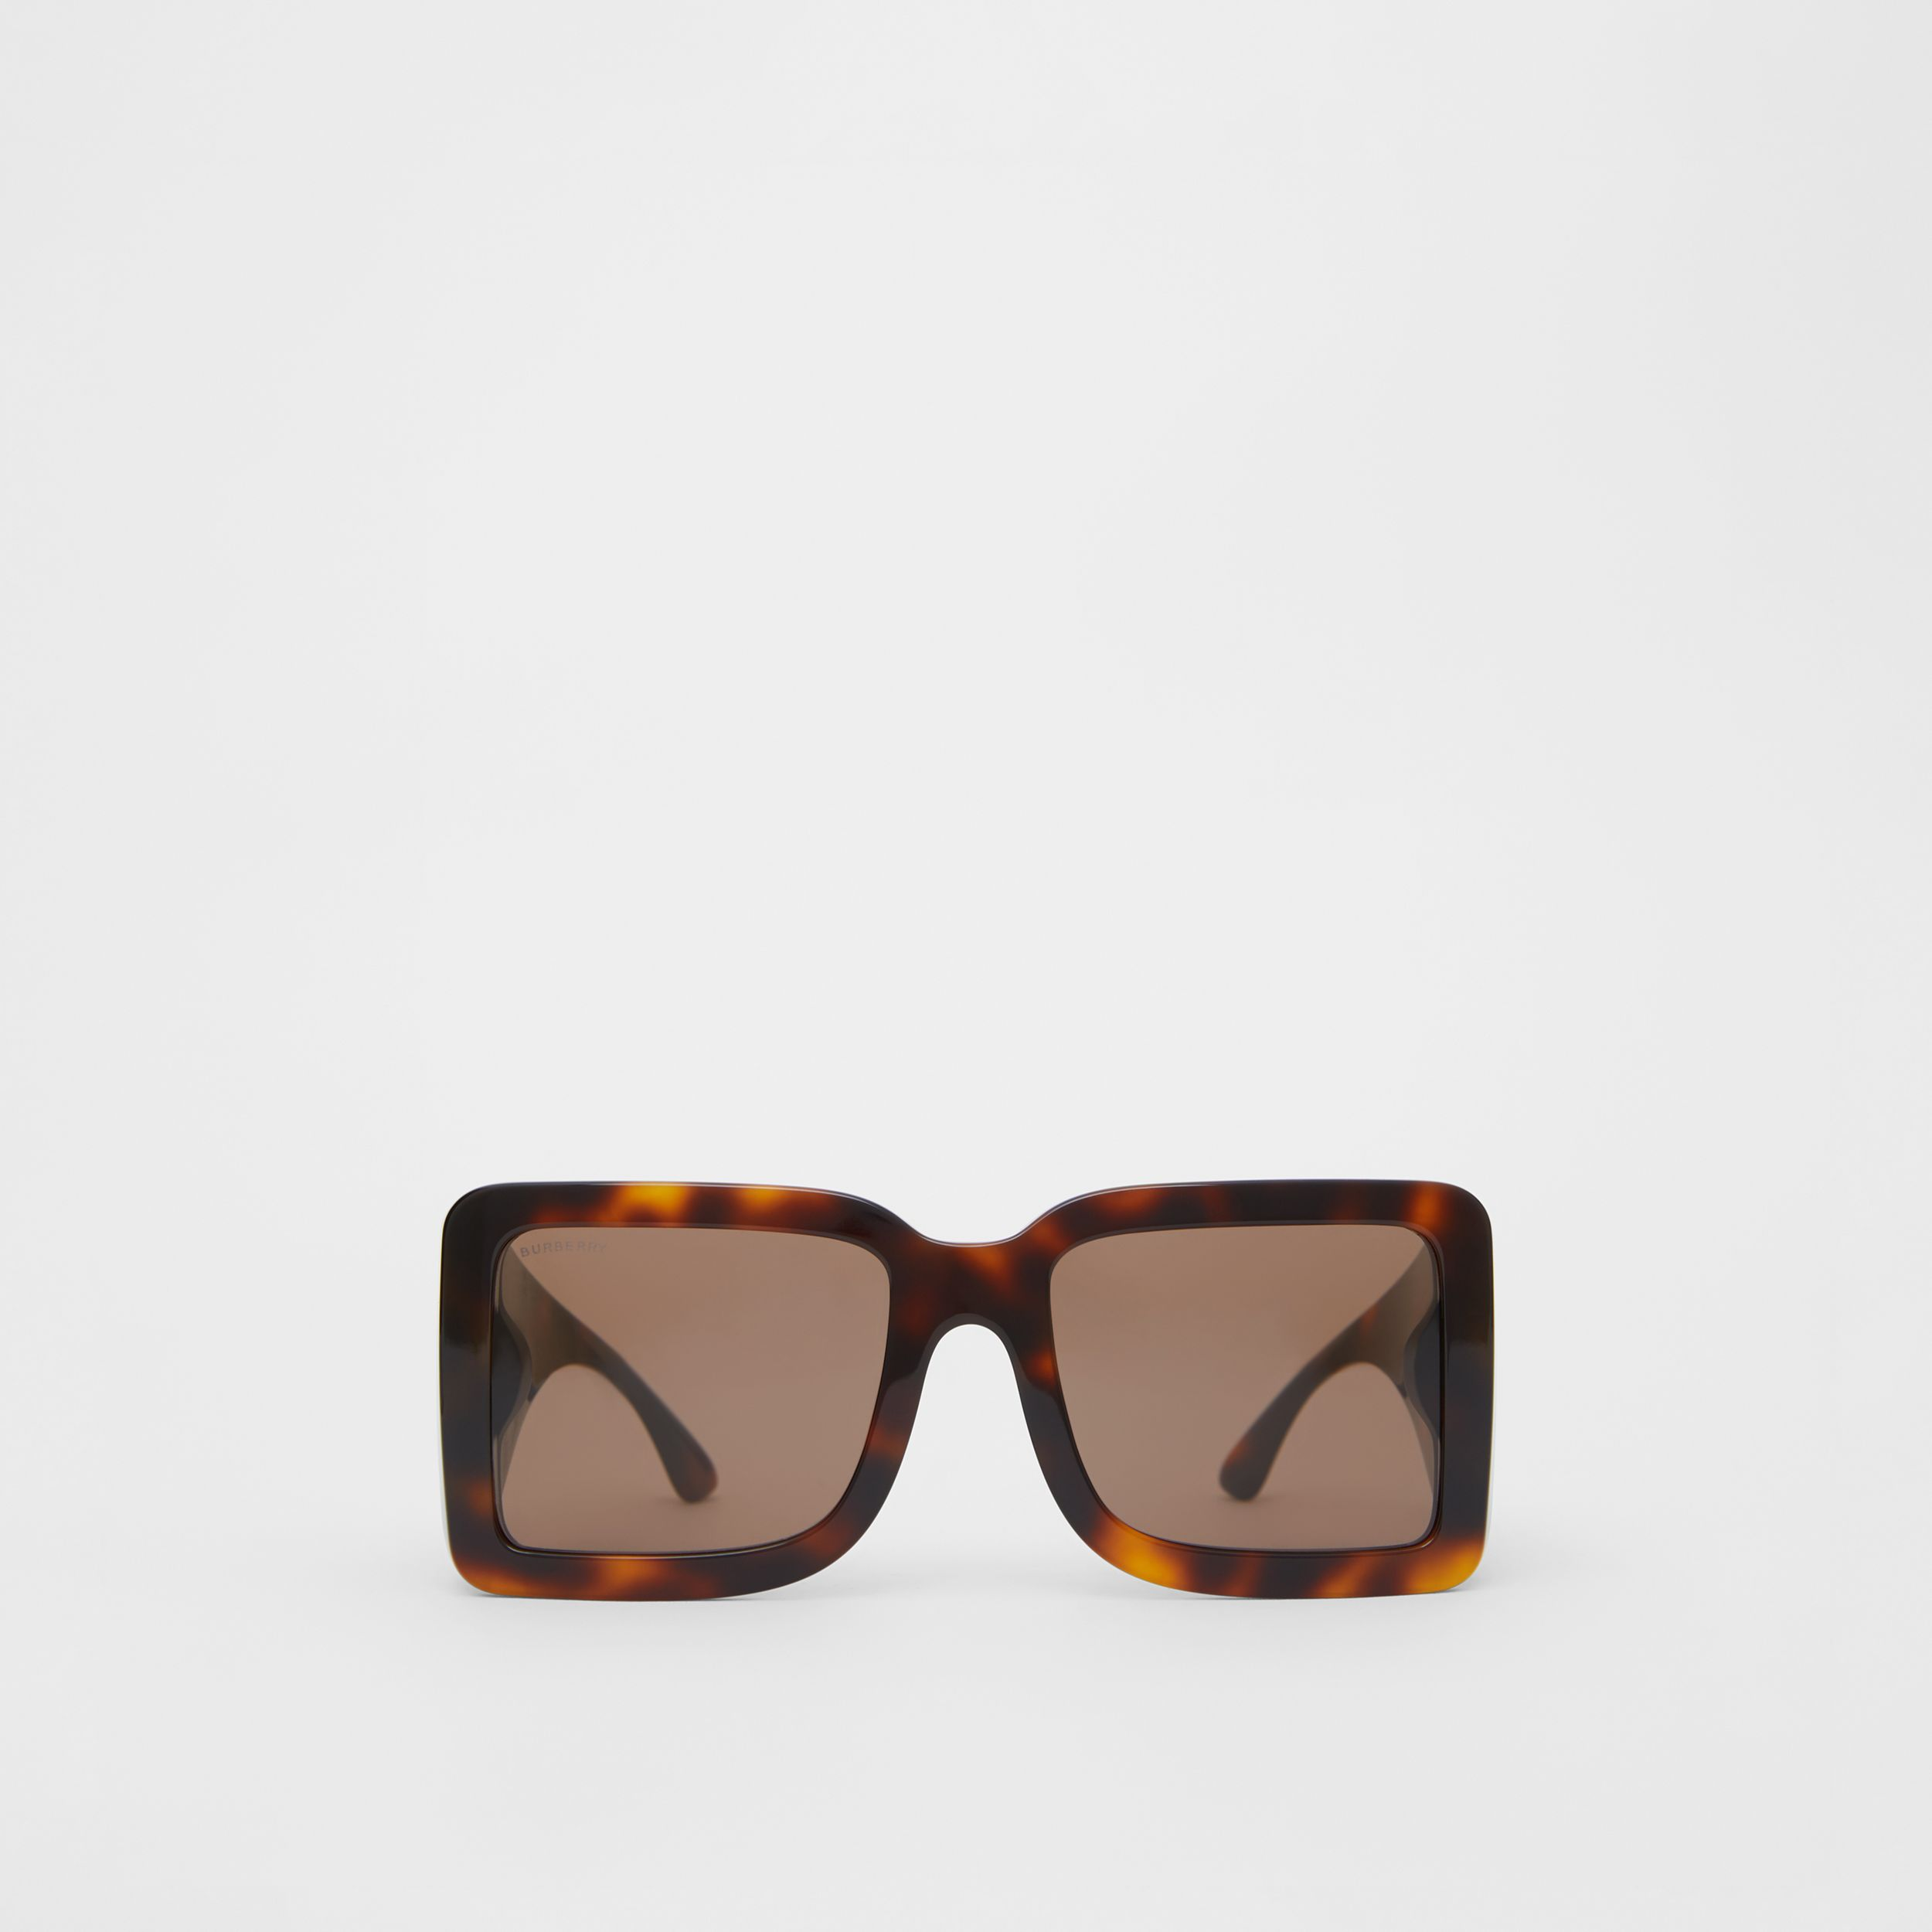 B Motif Square Frame Sunglasses in Tortoise Amber - Women | Burberry Hong Kong S.A.R. - 1